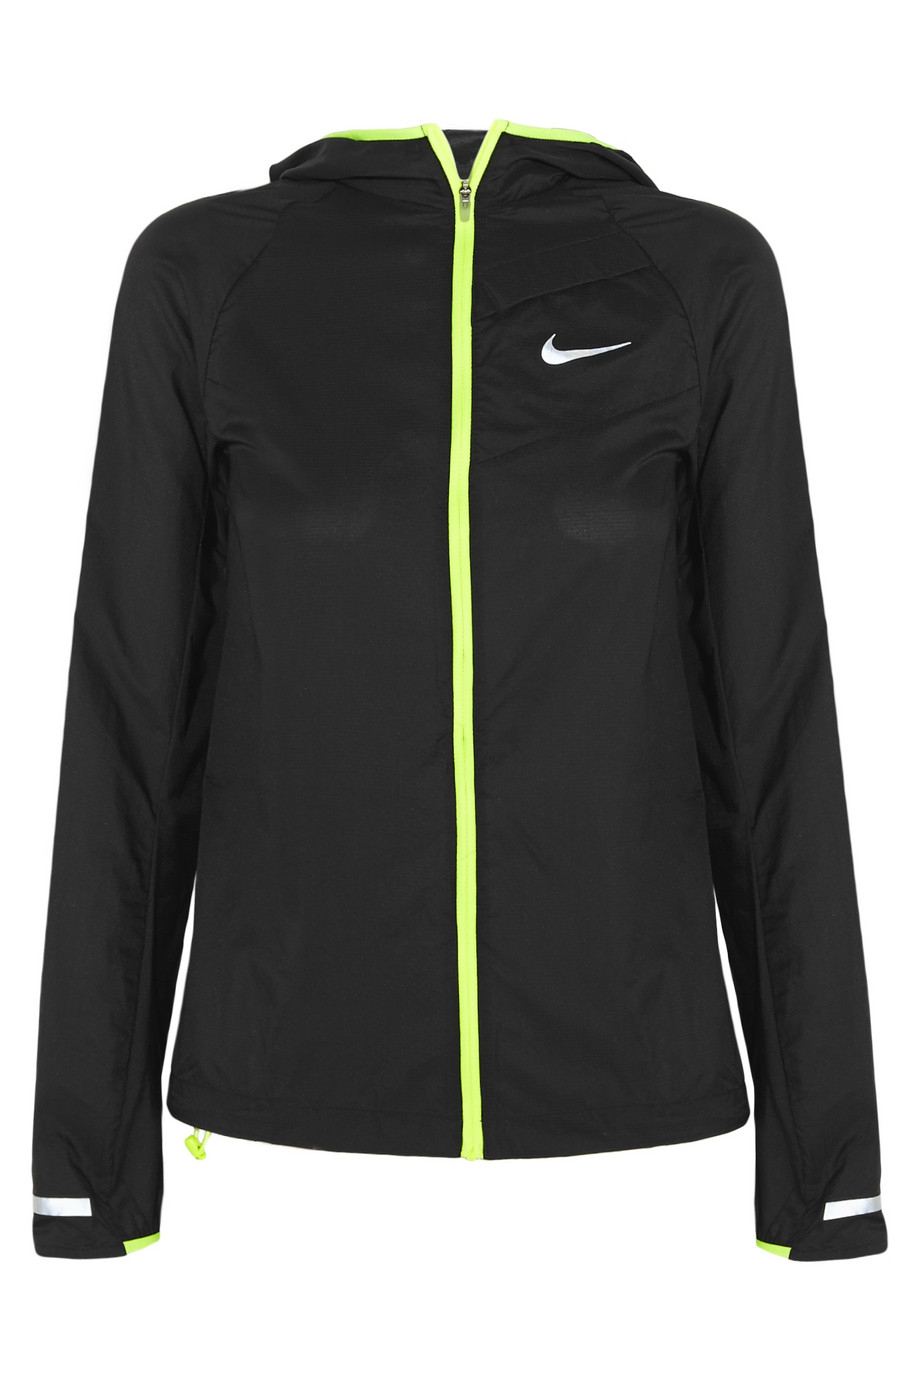 Lyst Nike Impossibly Light Shell Running Jacket In Black